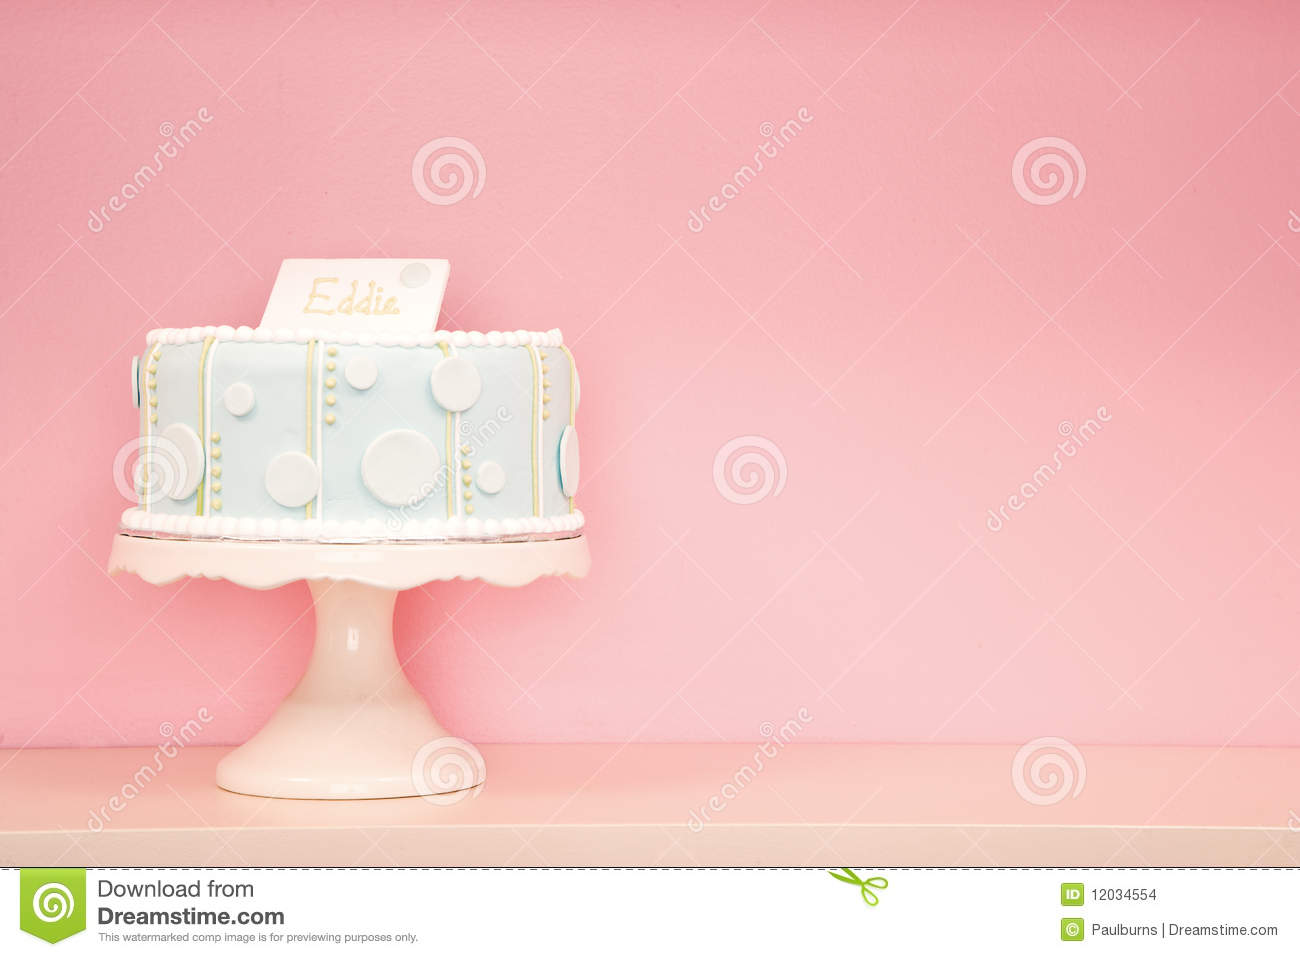 Cute Birthday Cake Wallpaper Bolo Decorado De Encontro Ao Fundo Cor De Rosa Foto De